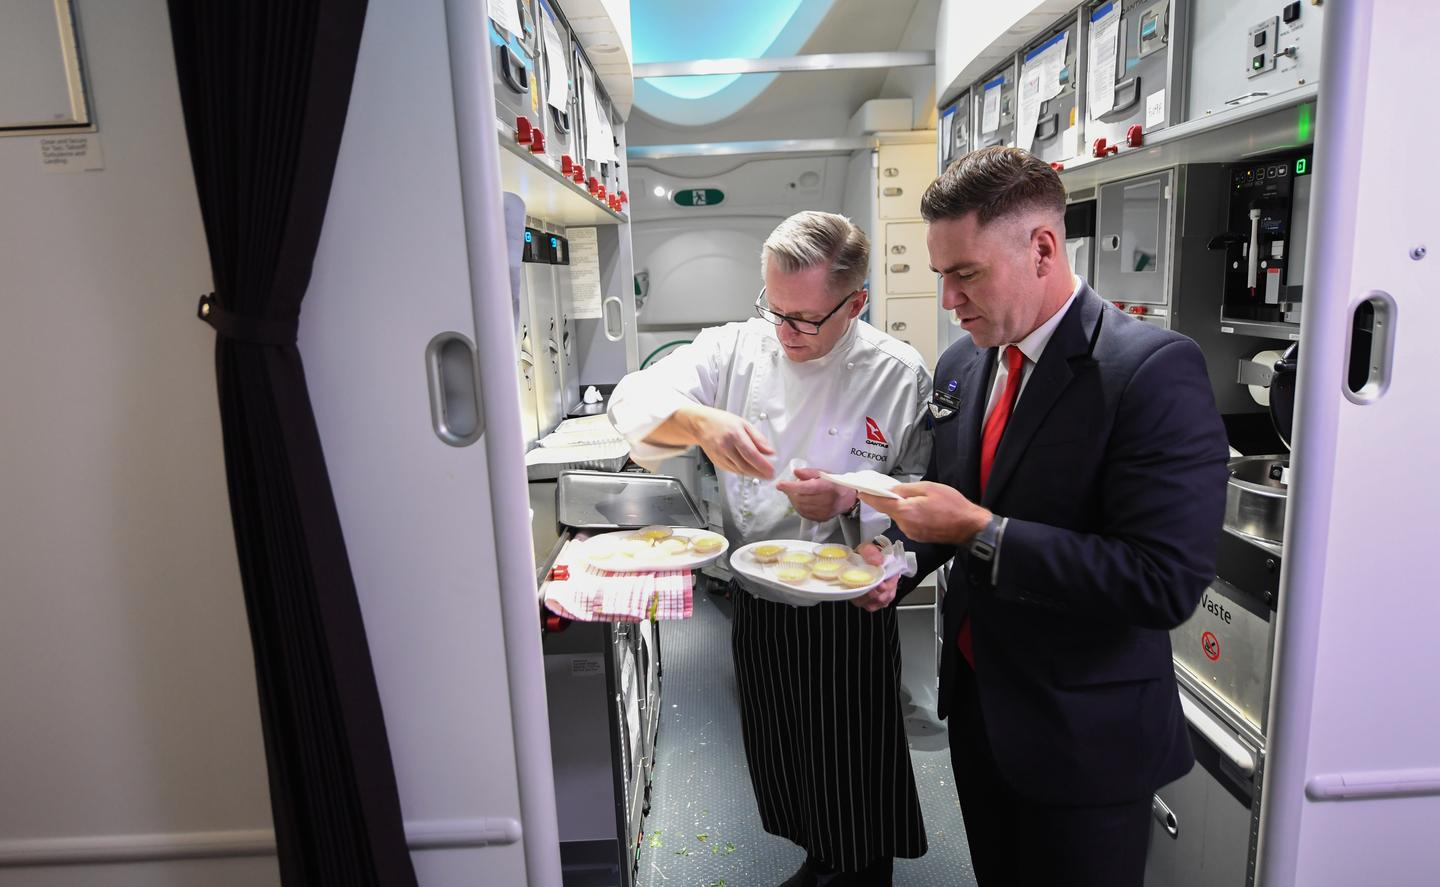 Meal times were adjusted to tackle jet lag on Qantas' record-breaking 19-hour flight